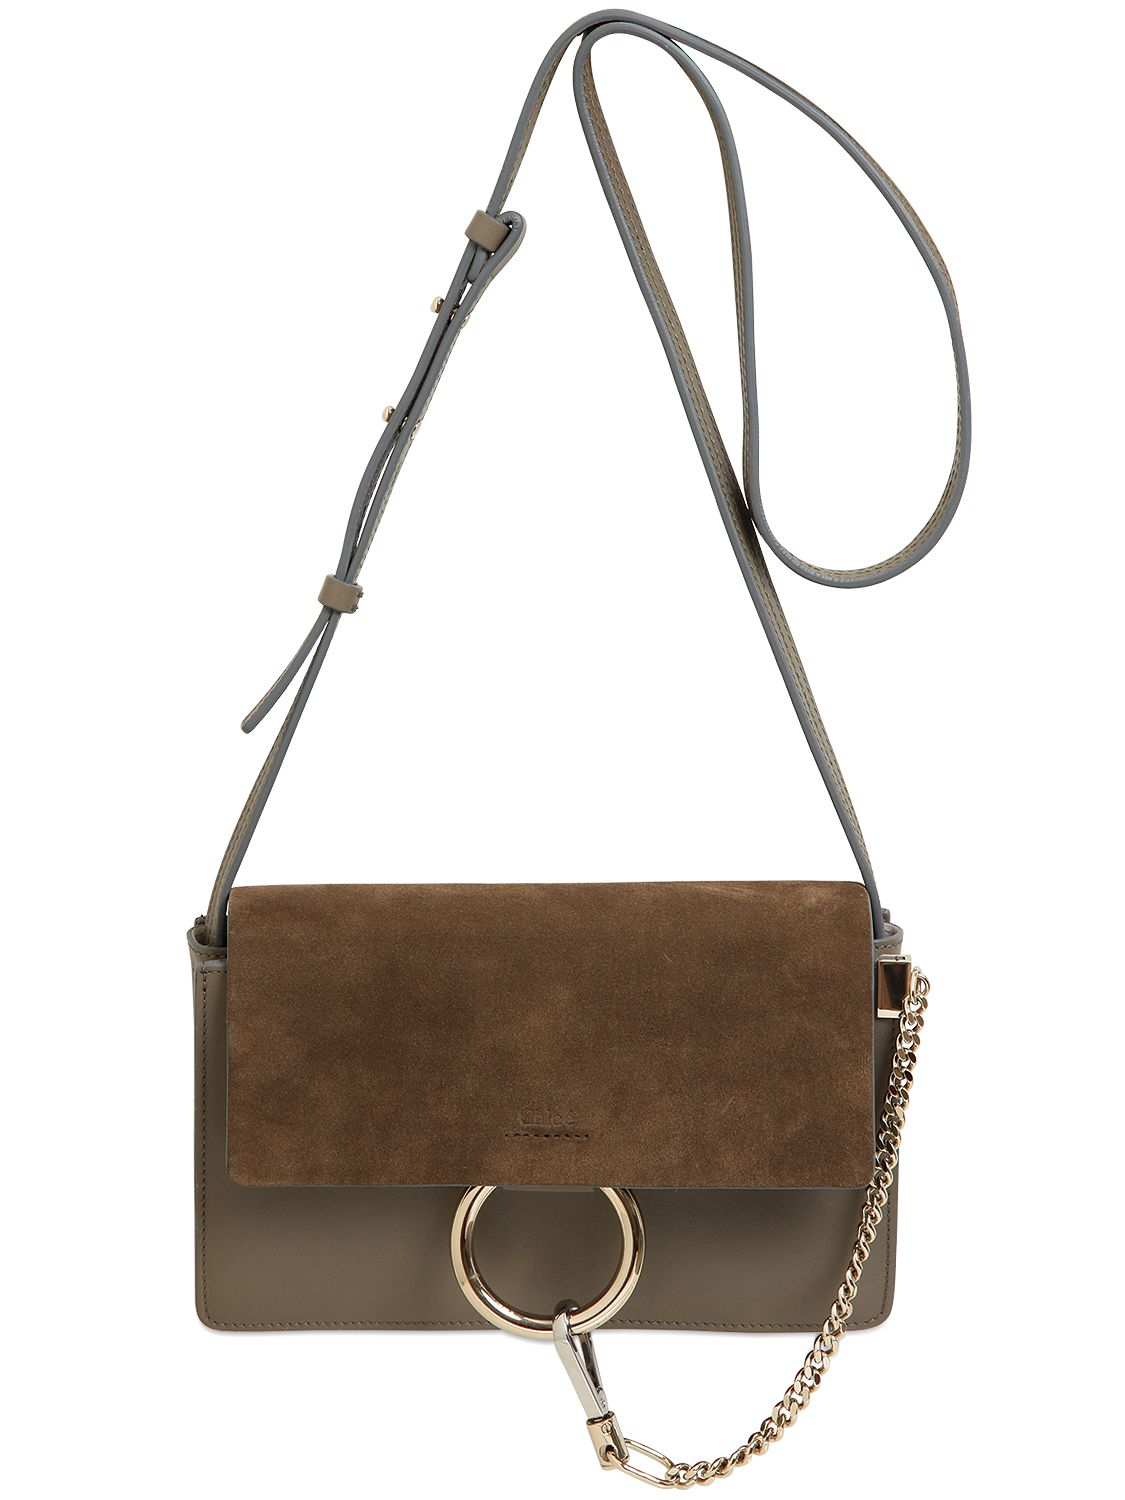 Chlo 233 Small Faye Leather Amp Suede Shoulder Bag In Gray Lyst